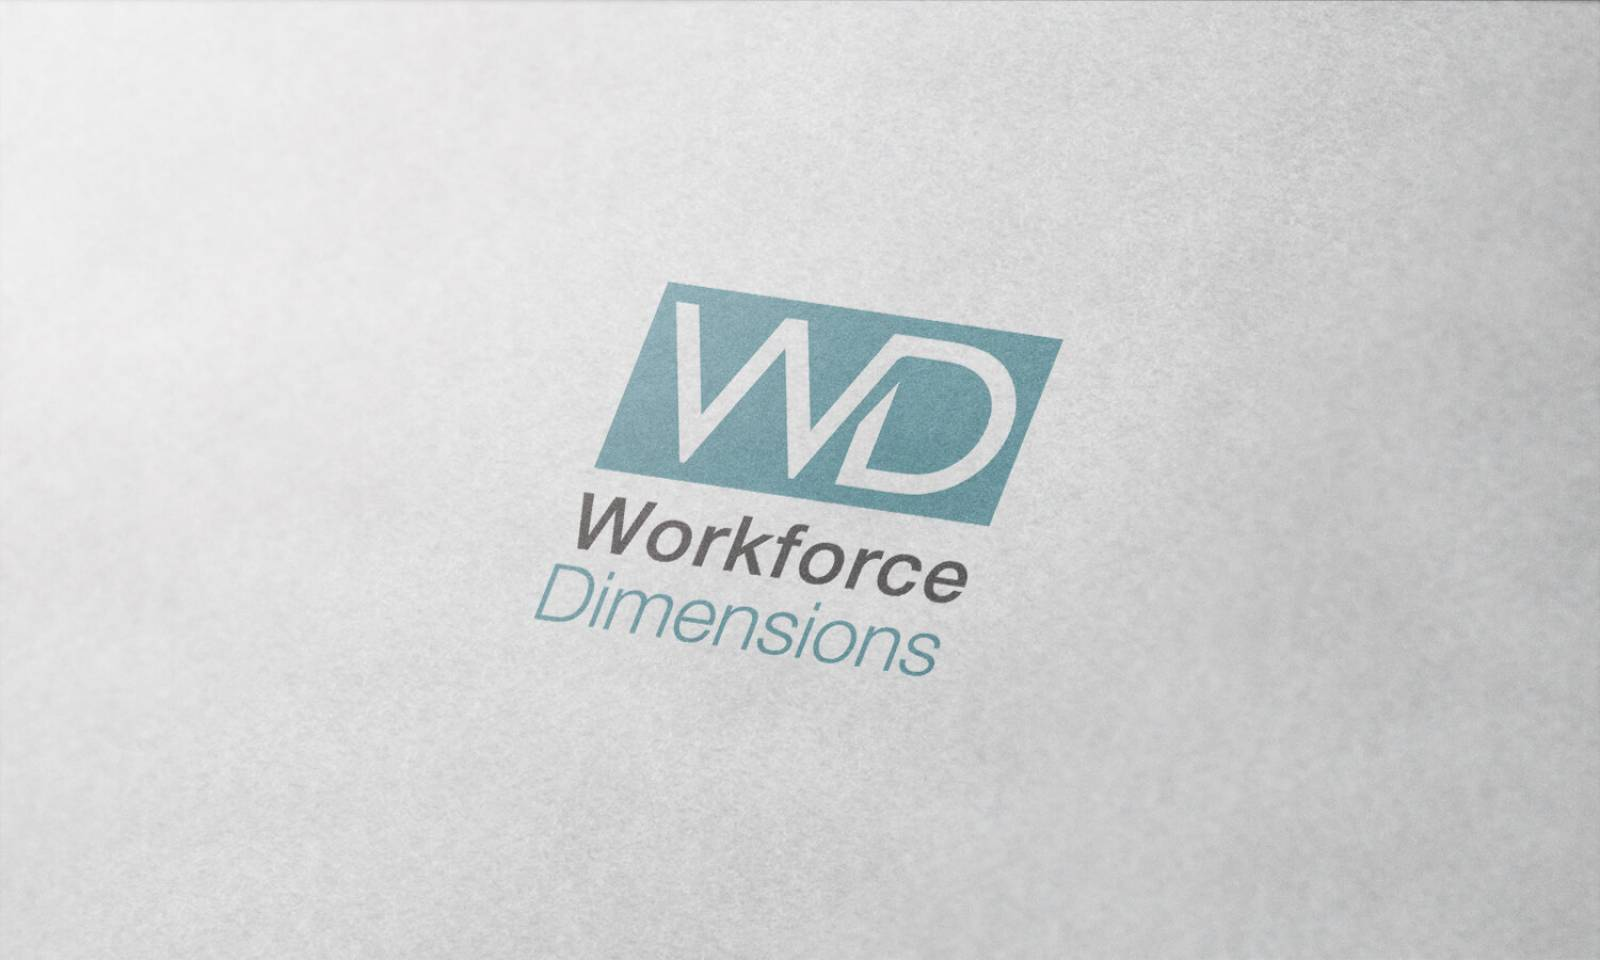 Workforce-dimensions-logo-1-identity-design-agency-graphic-design-canterbury.jpg